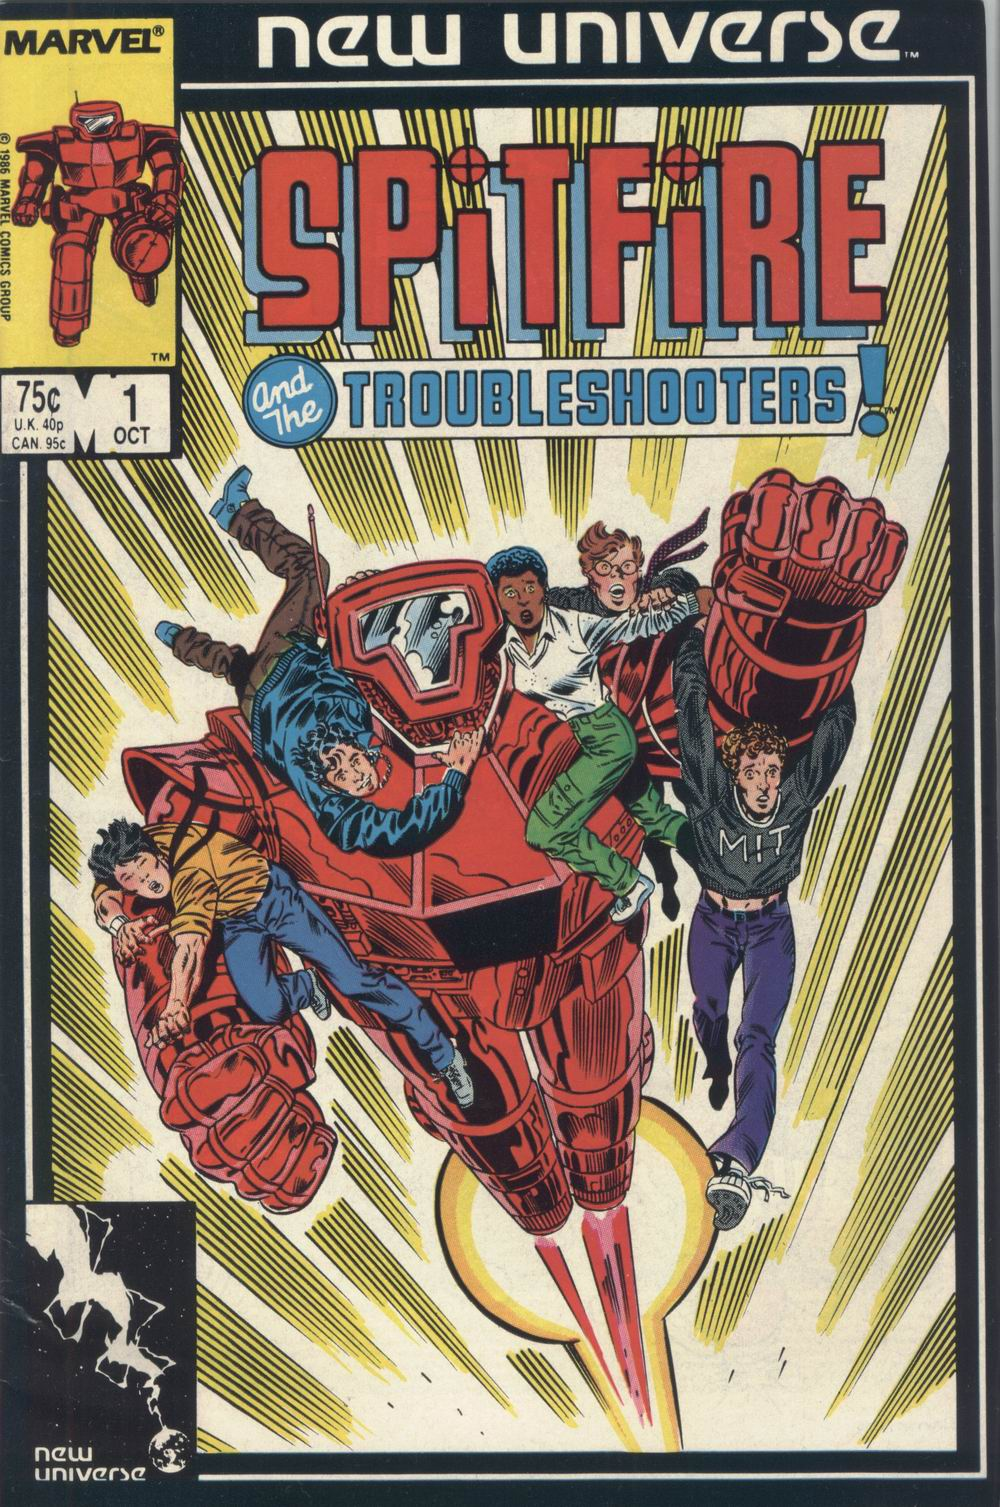 Spitfire and the Troubleshooters 01-00.jpg